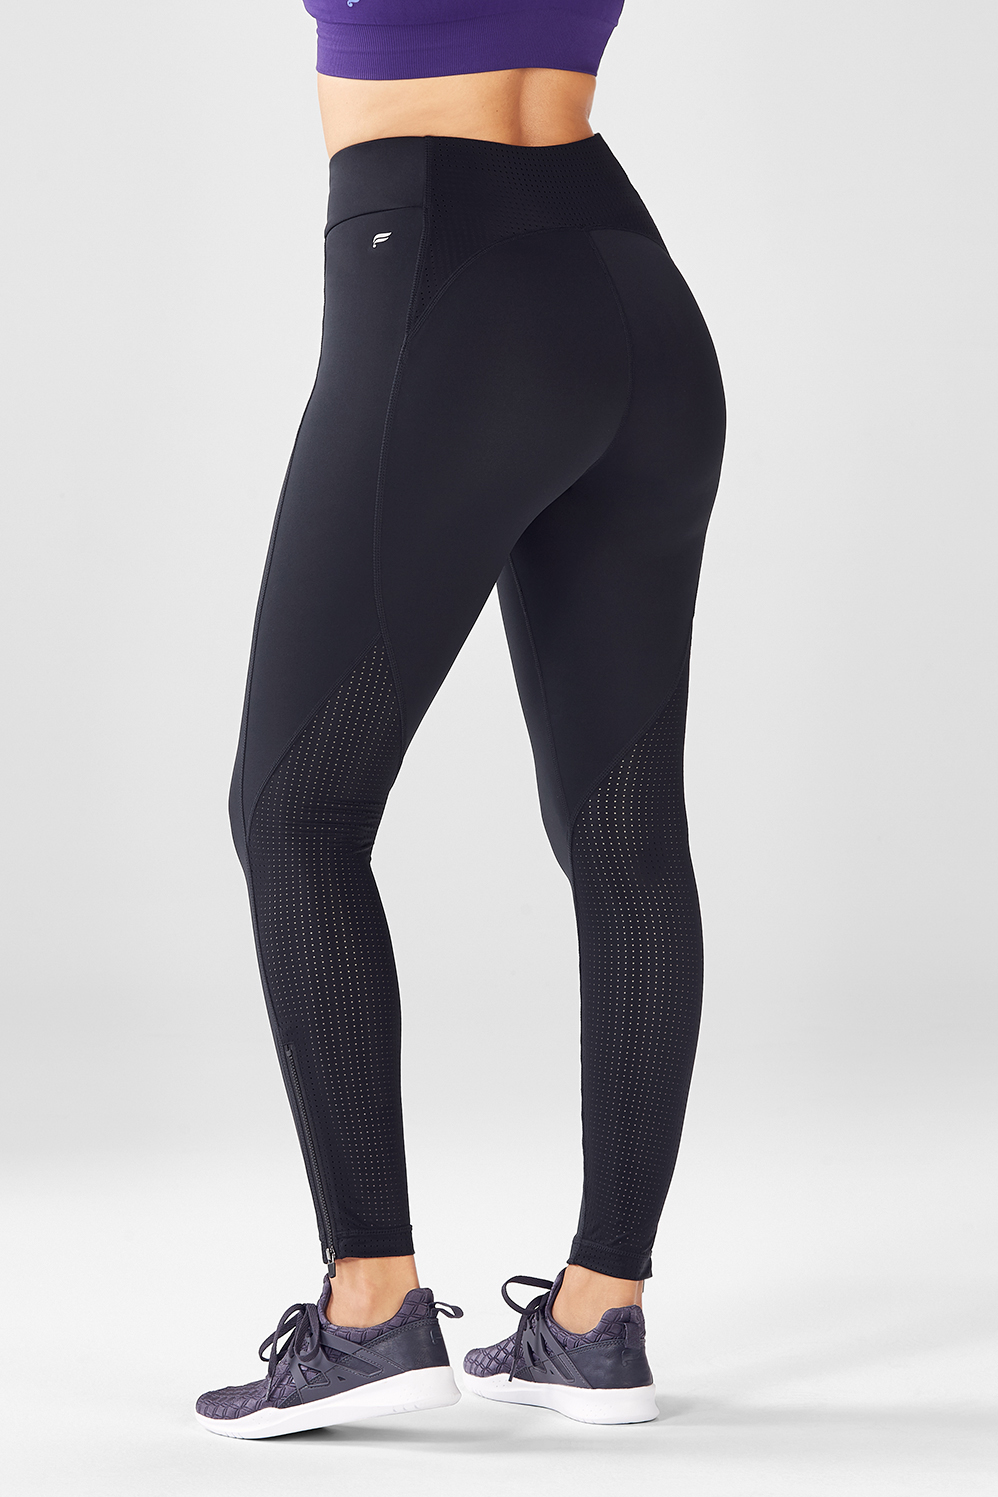 2e3f3d7c0820df High-Waisted Solid Spin Pant - Fabletics